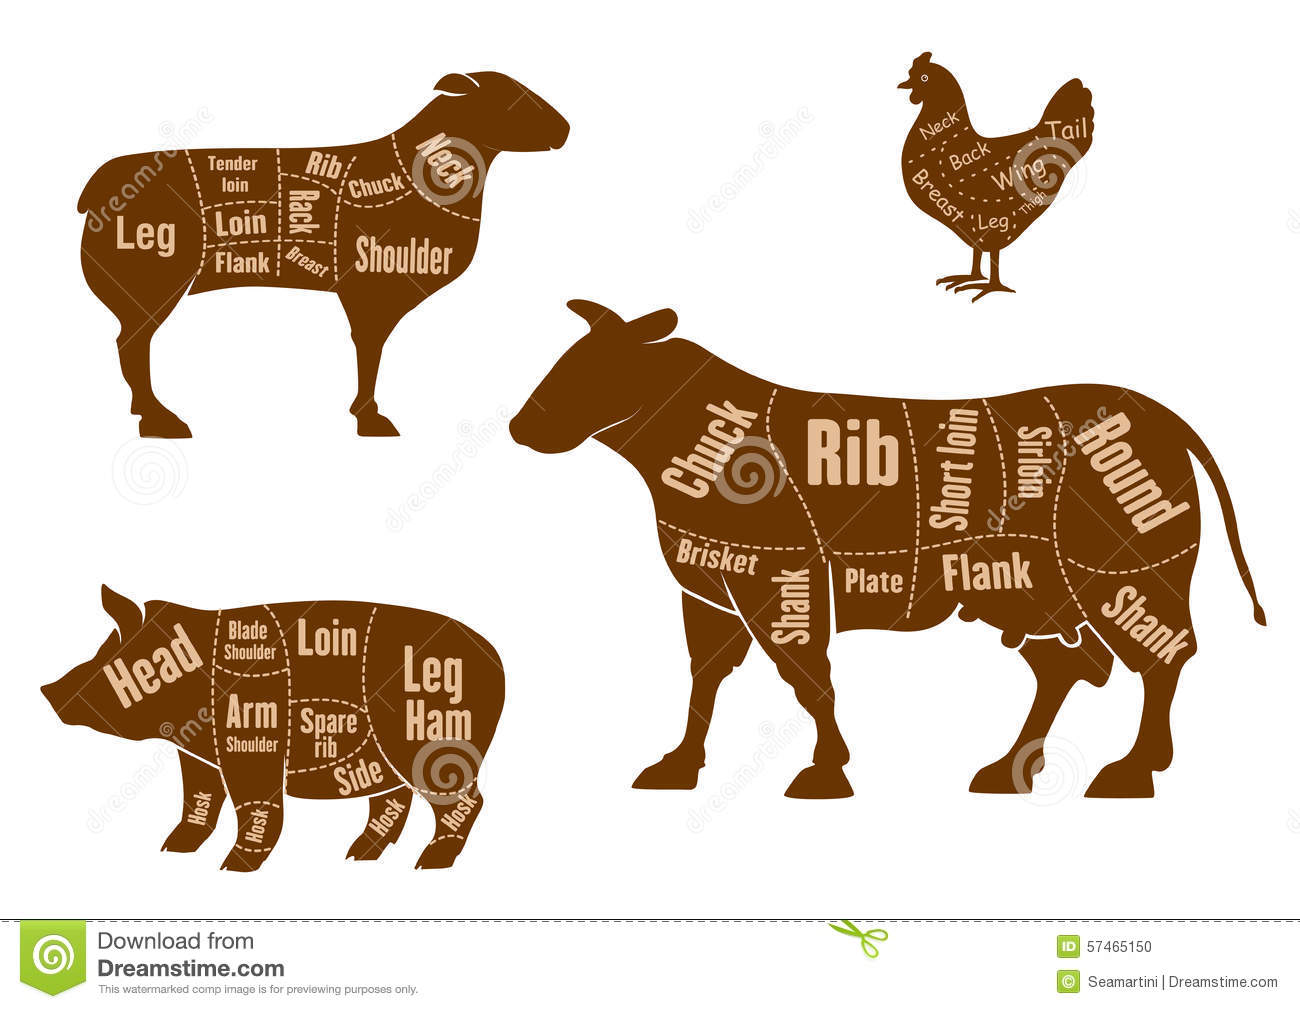 pork butcher cuts diagram how to draw a venn with 3 circles chicken, pork, beef and lamb meat scheme stock vector - image: 57465150